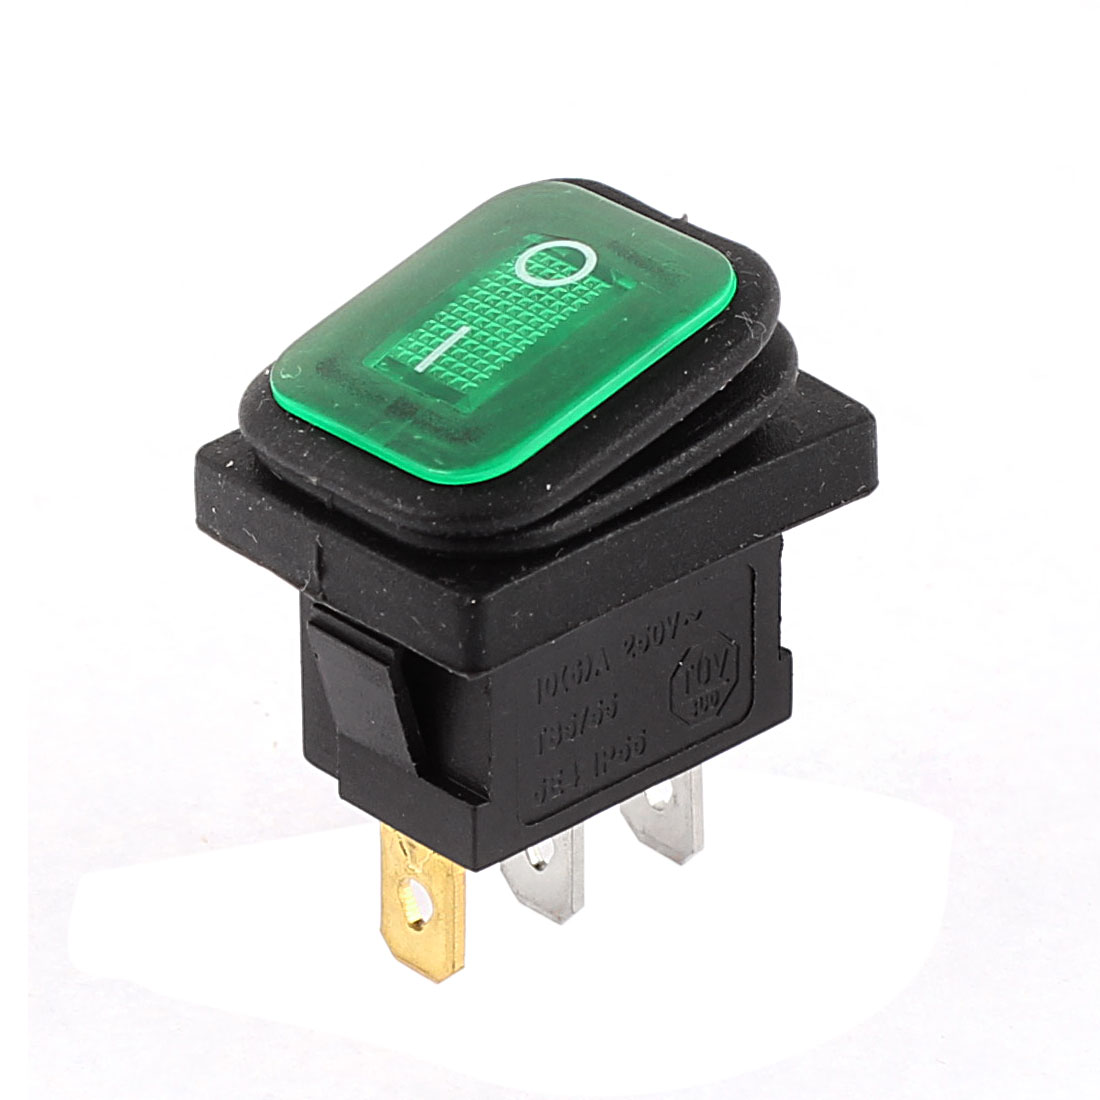 Green Pilot Light AC 250V 10A I/O 2 Position Snap In SPST Latching Waterproof Car Boat Rocker Switch